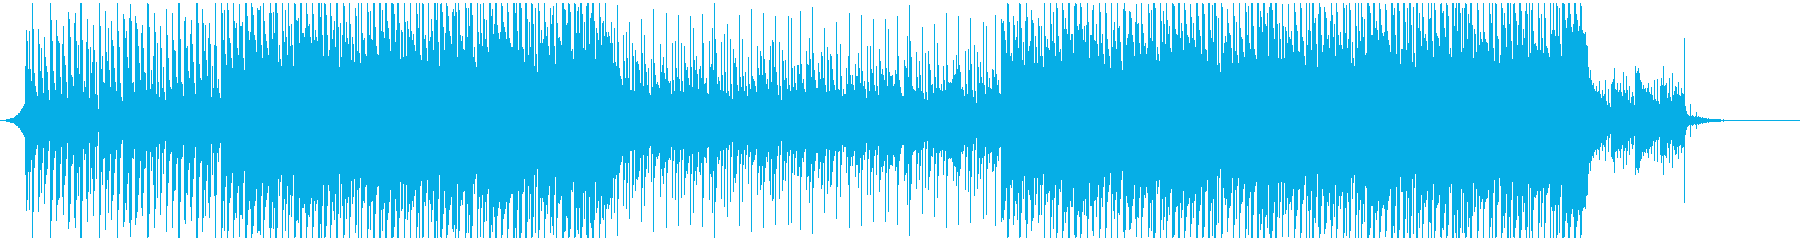 Opening refreshing feeling for commercials and corporate VPs's reproduced waveform